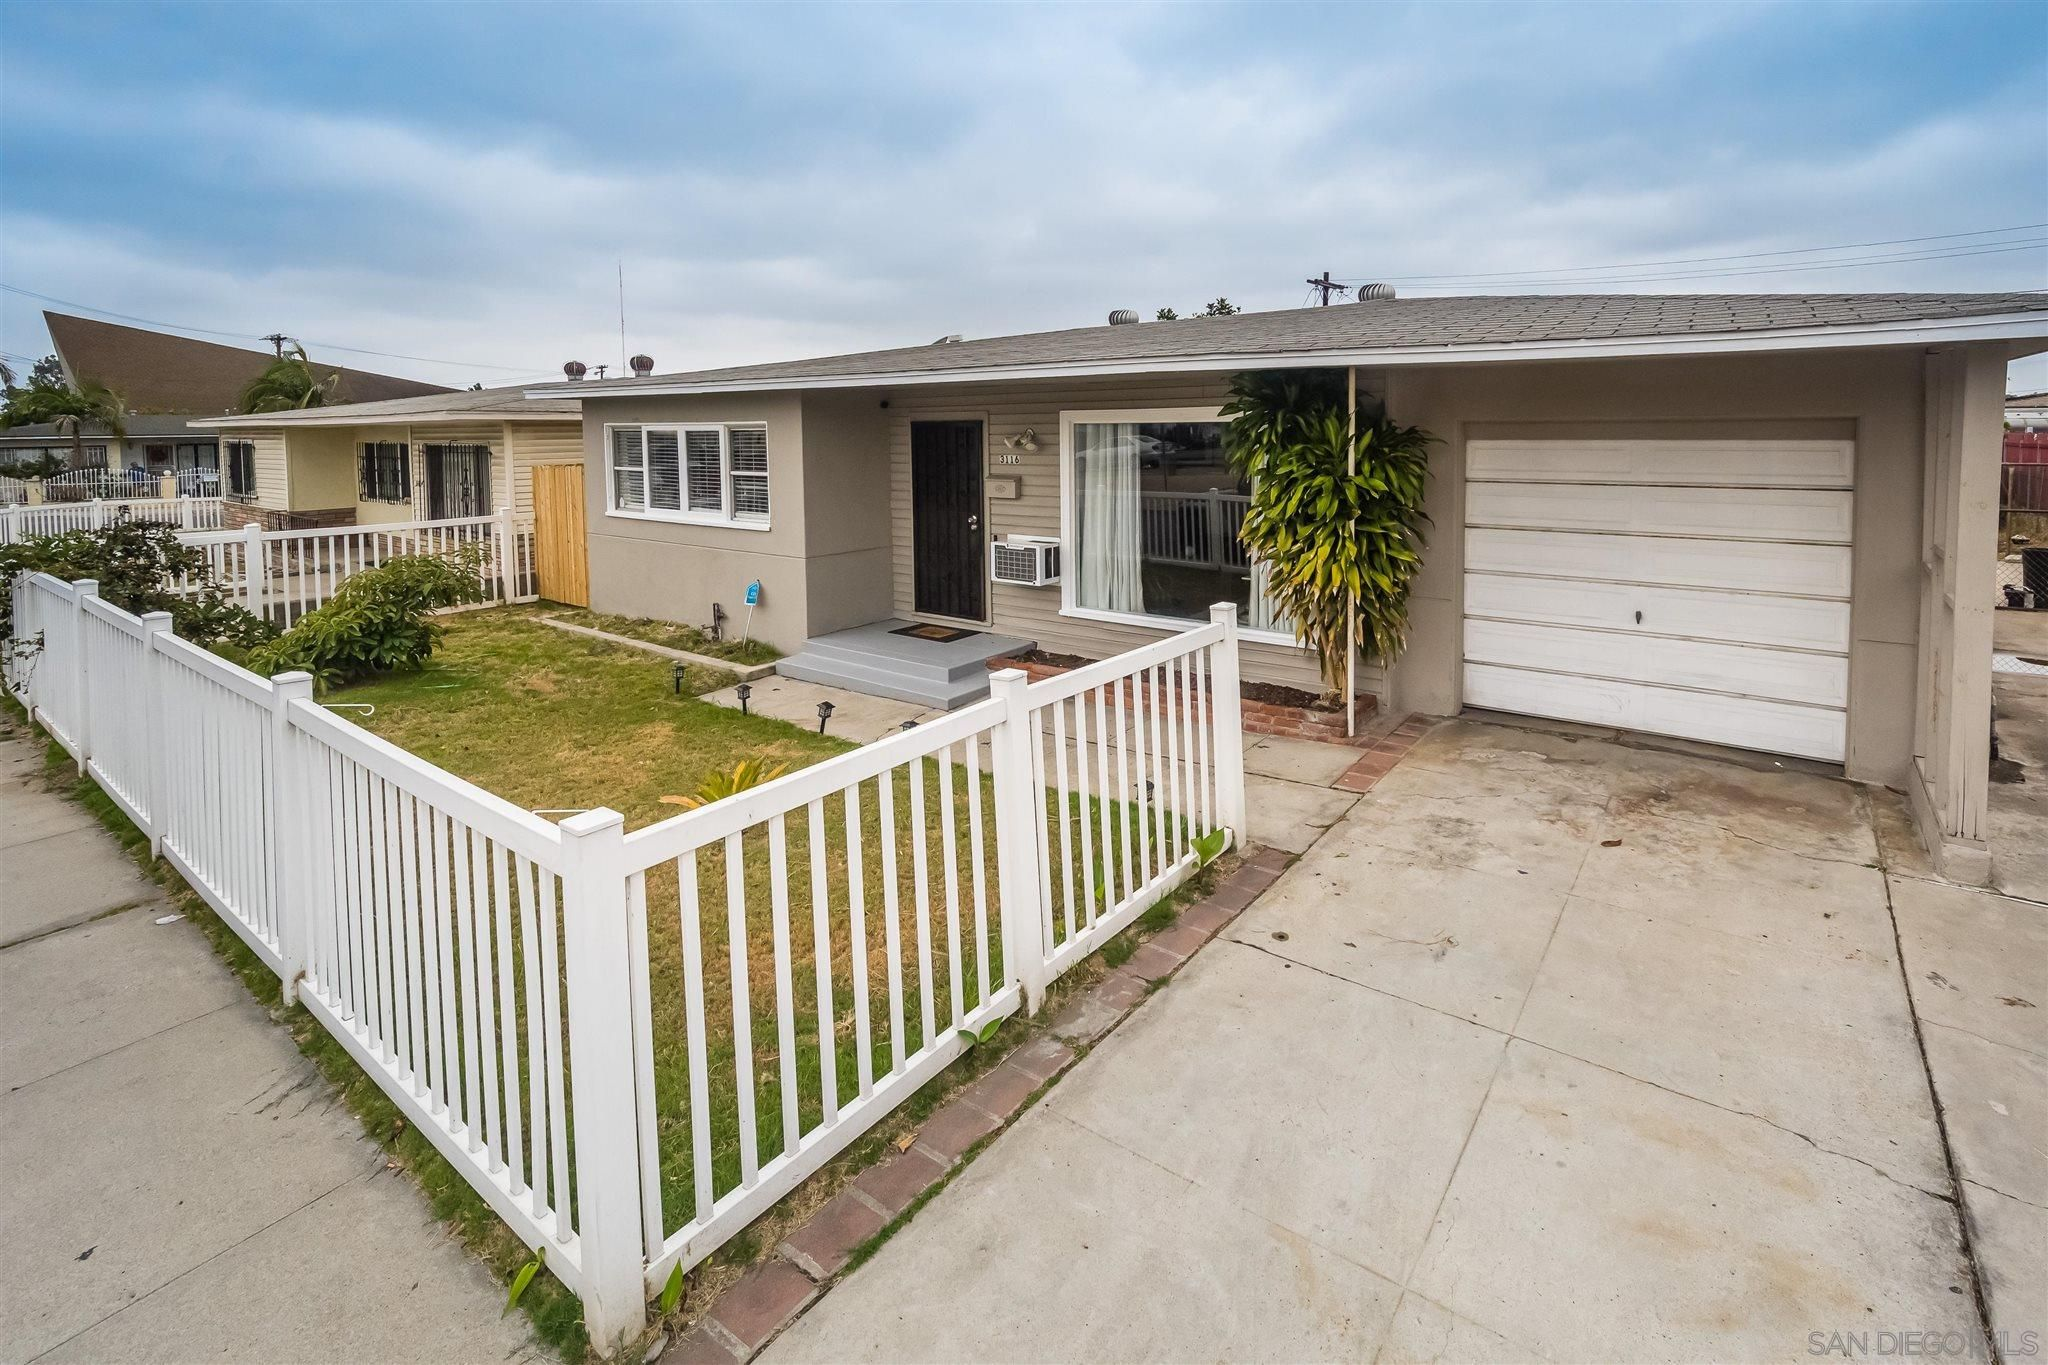 Main Photo: EAST SAN DIEGO House for sale : 2 bedrooms : 3116 54Th St in San Diego